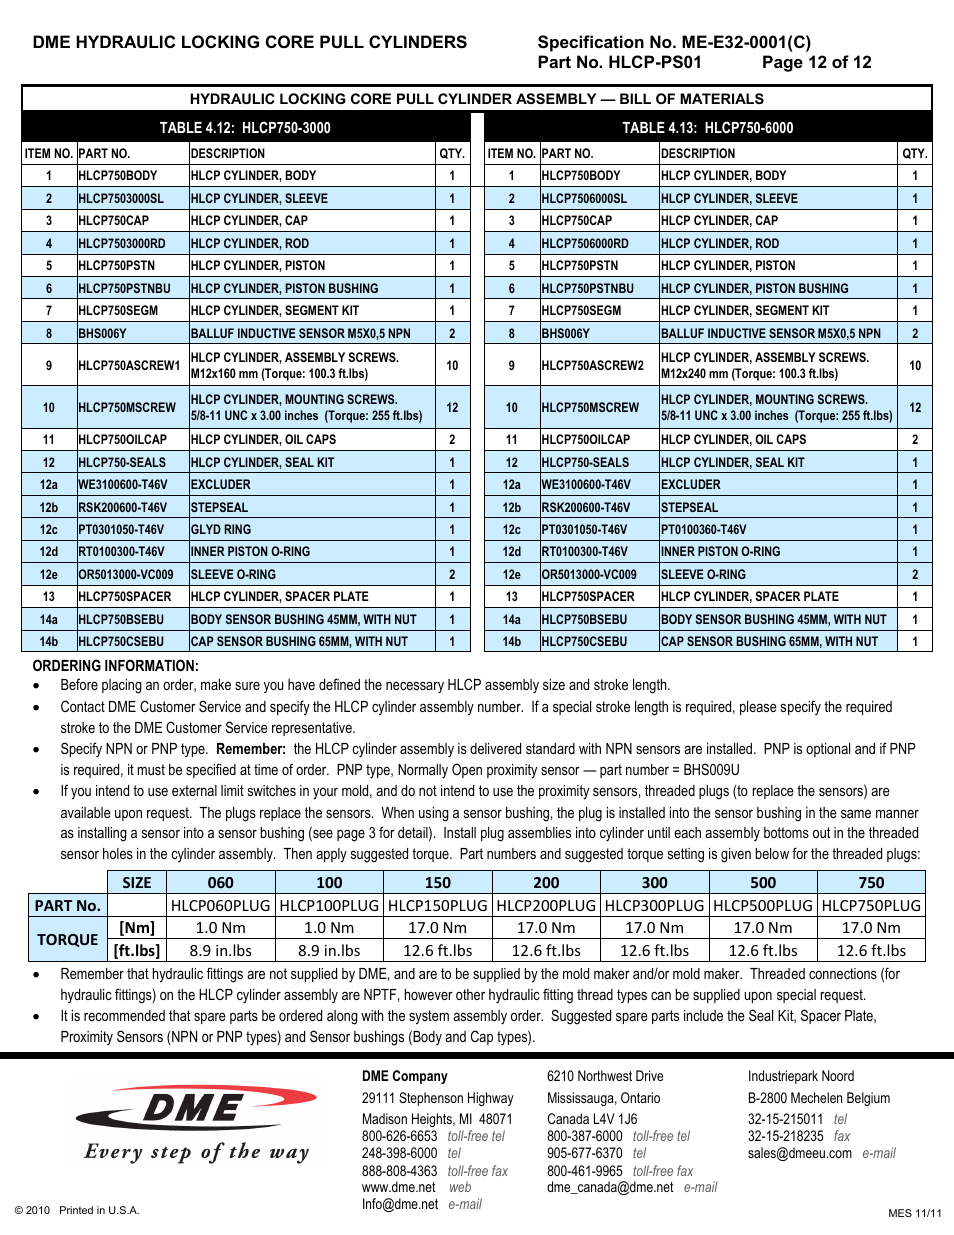 DME Hydraulic Locking Core Pull Cylinders User Manual | Page 12 / 12